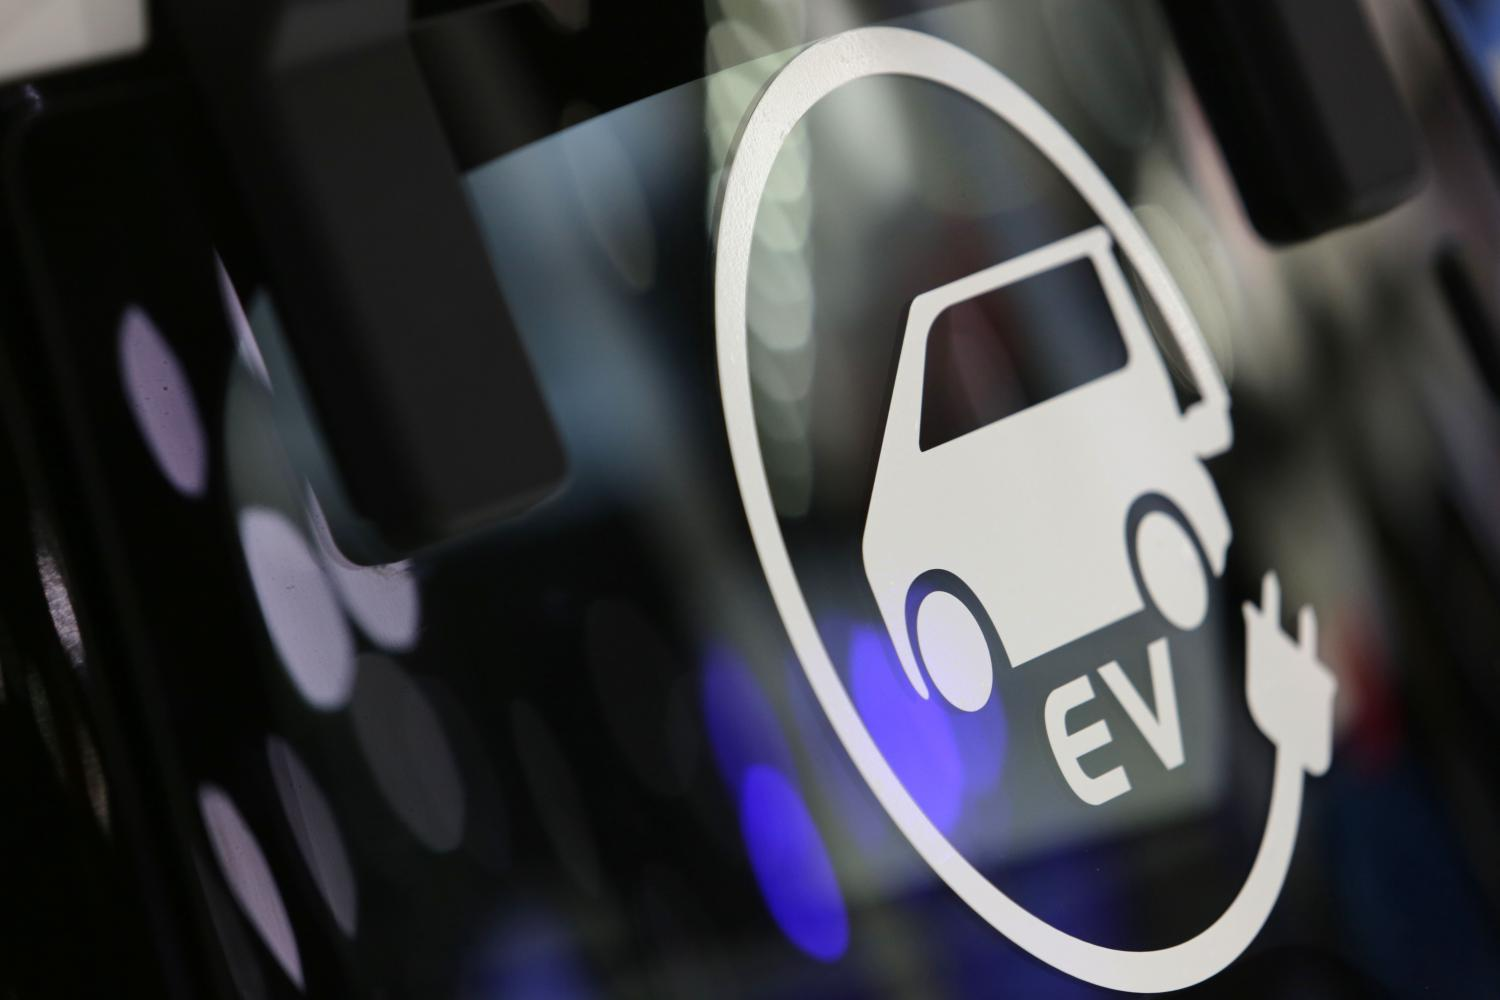 An EV logo at the 35th Thailand International Motor Expo. The government is putting in effort to make Thailand an EV hub for the region.